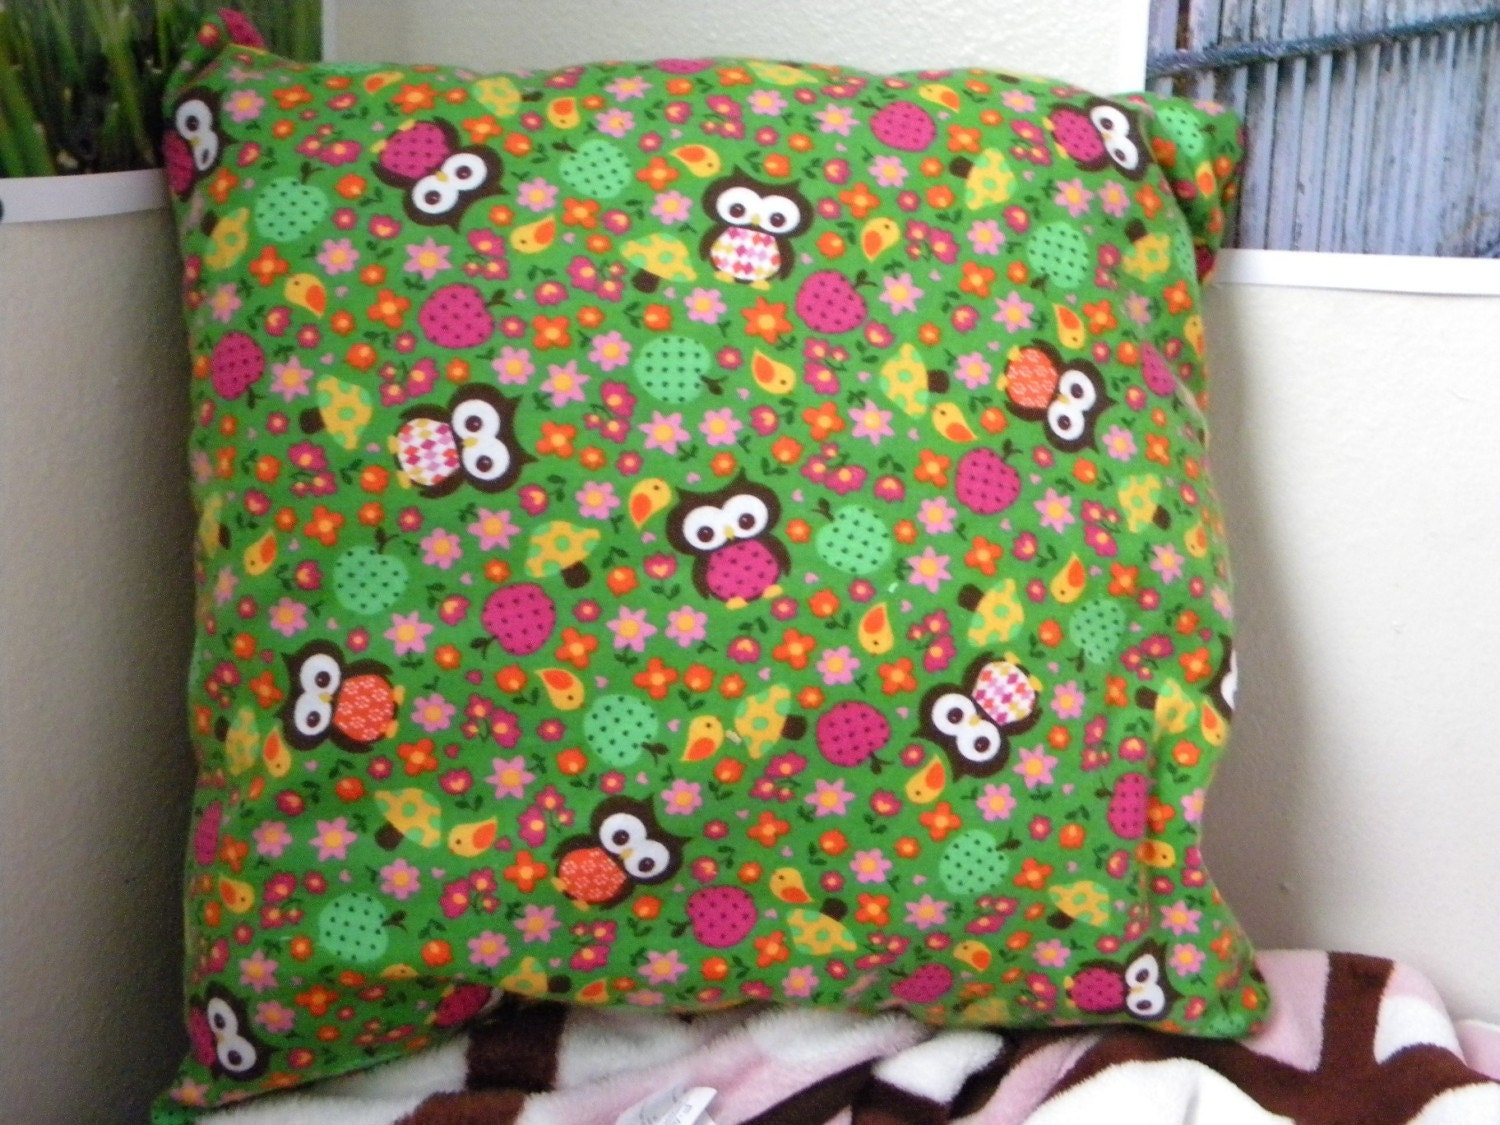 Owl Throw Pillow Etsy : Owl and Mushroom Throw Pillow